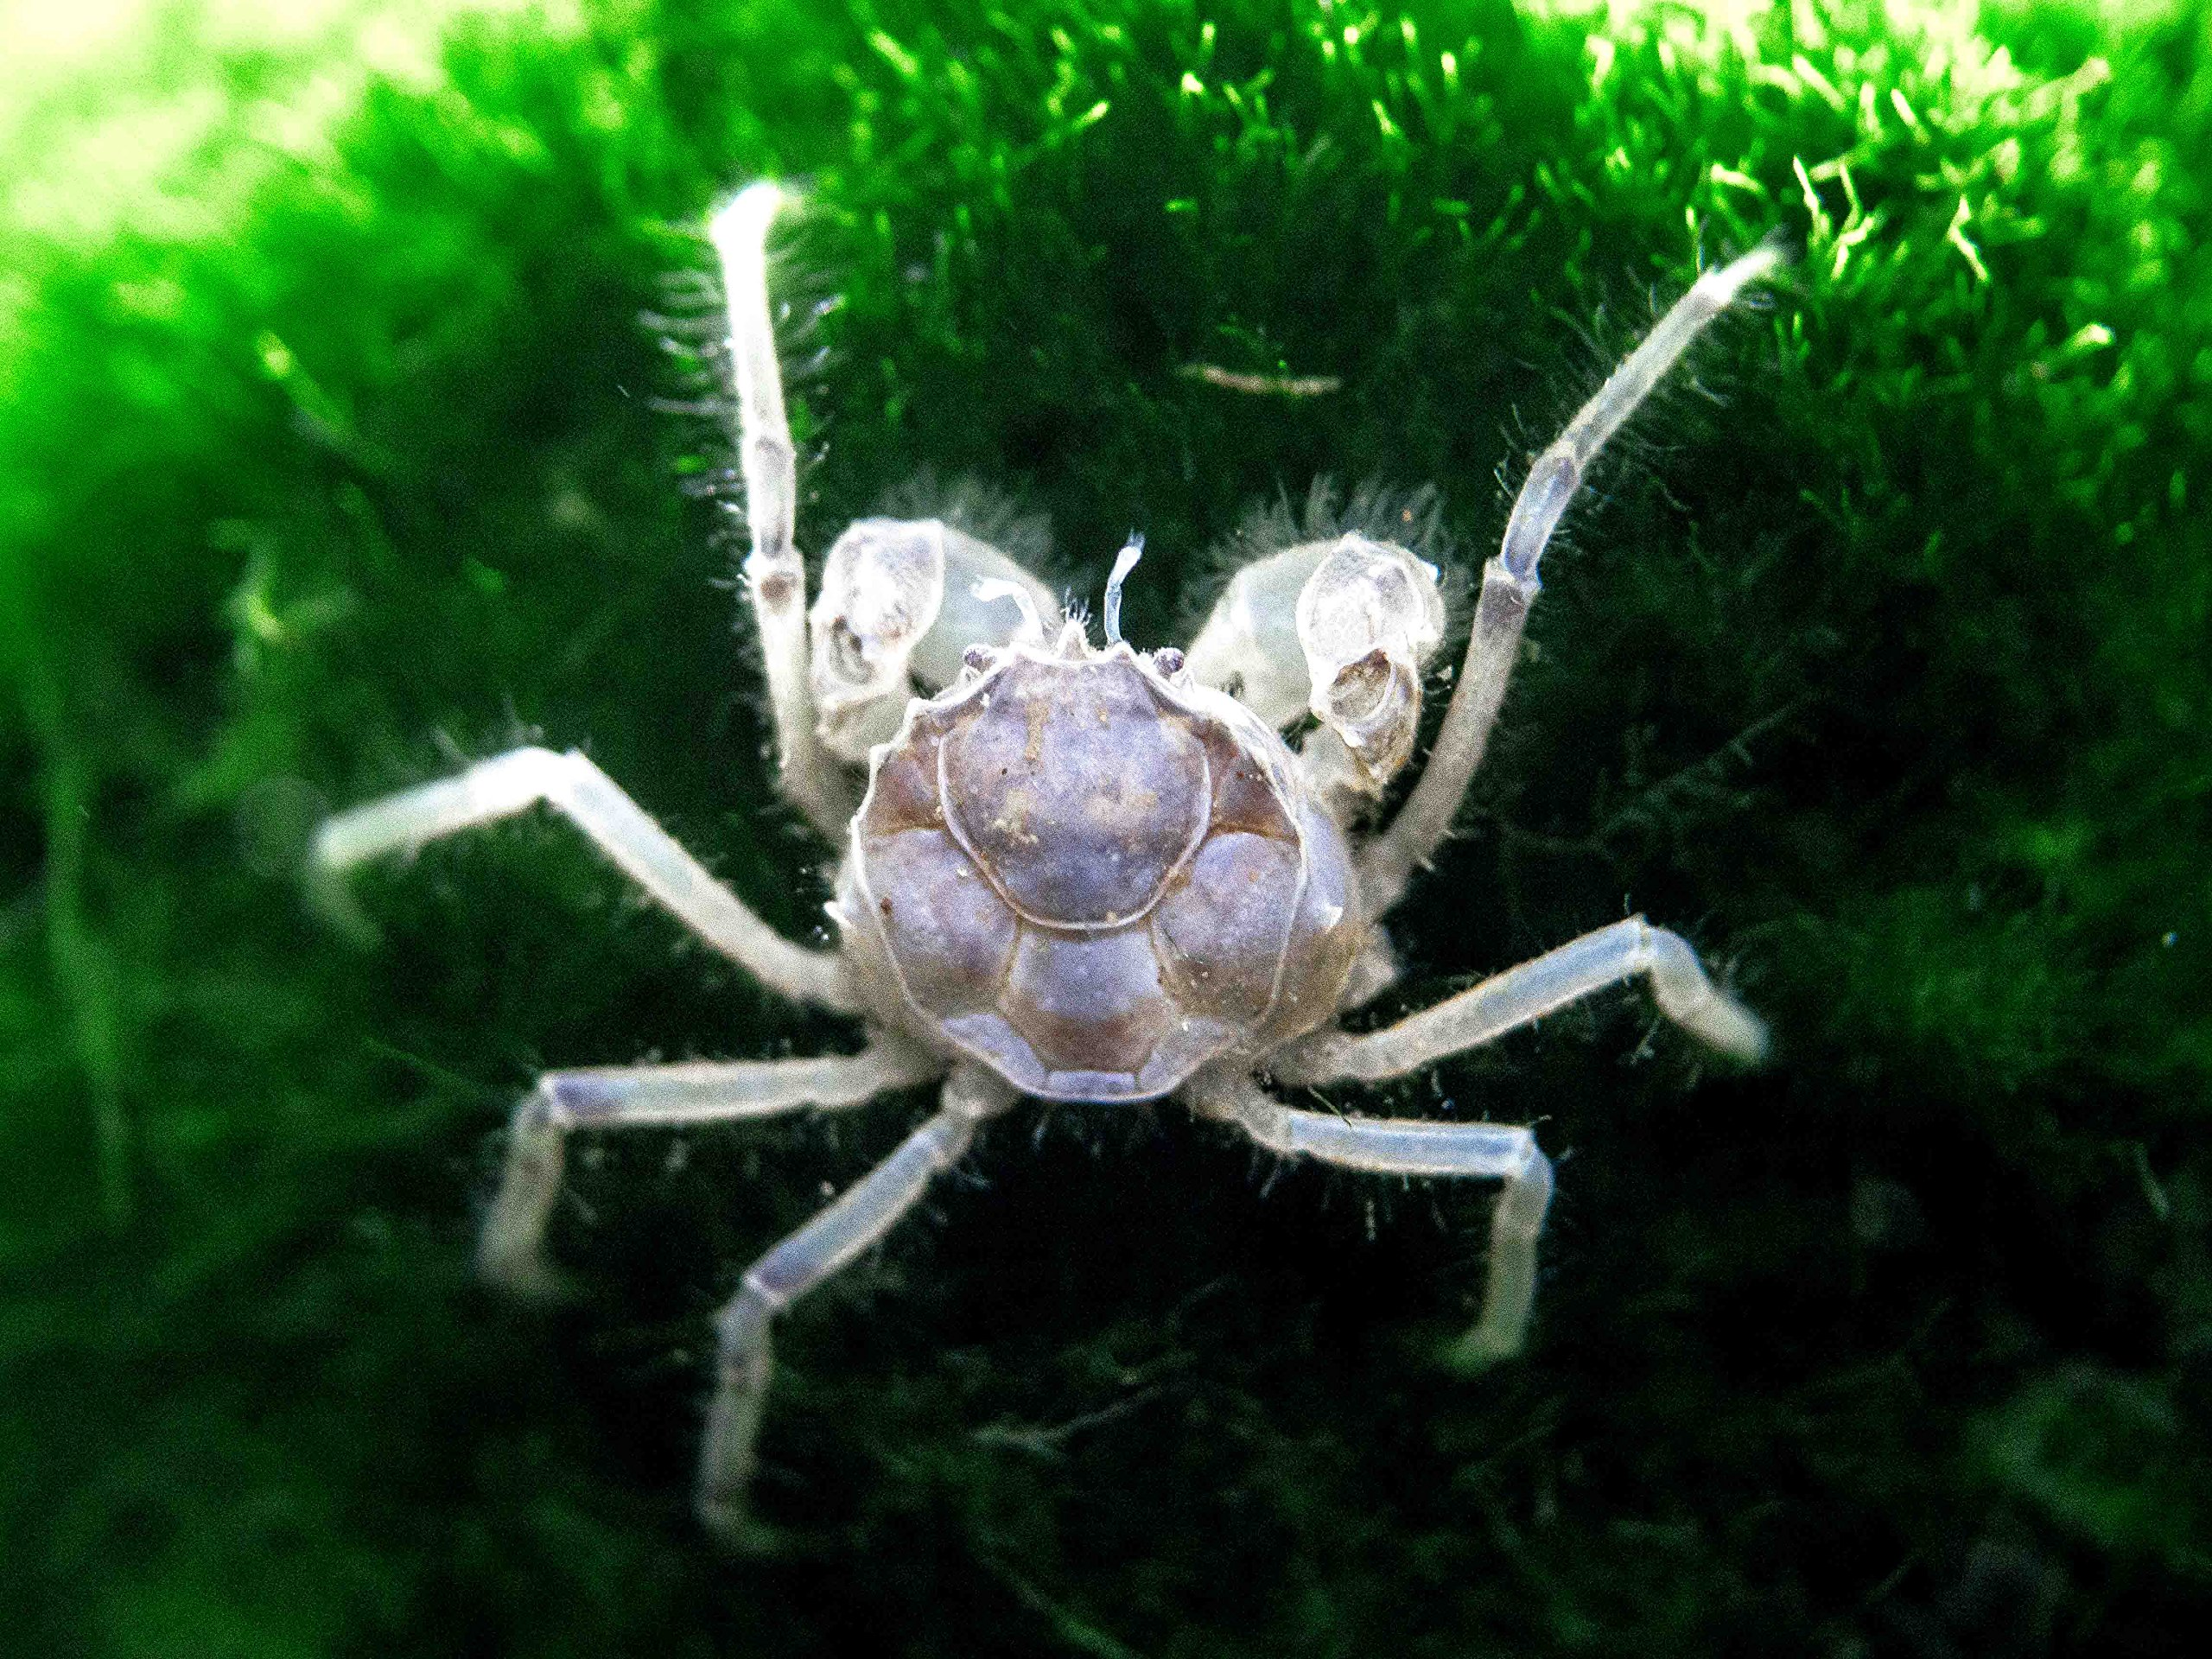 Amazon com: Aquatic Arts: Freshwater Crabs